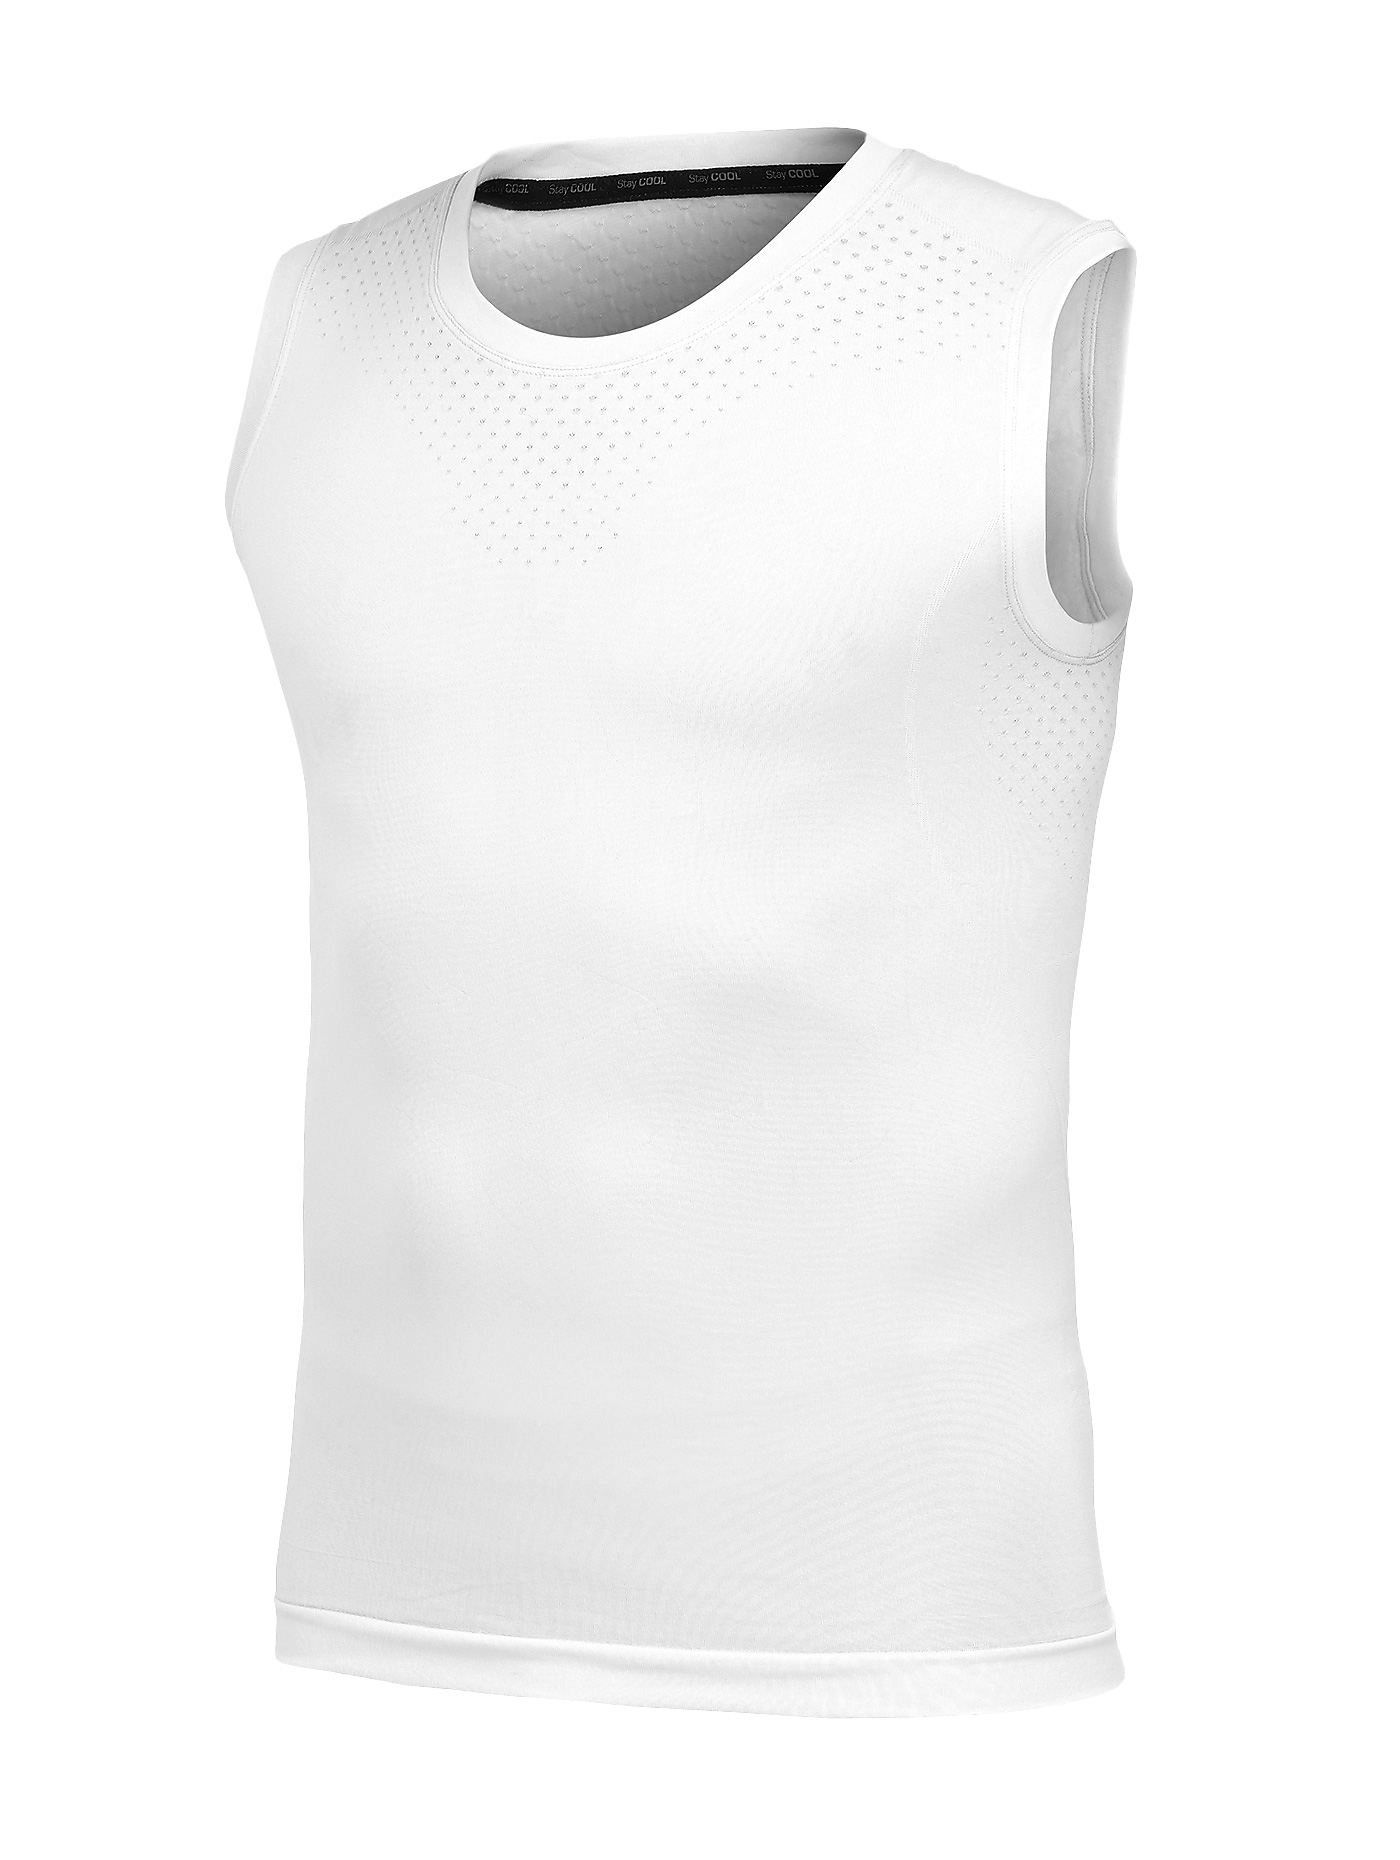 cfe815b31a6f2 Craft Seamless Stay Cool mouwloos ondershirt wit